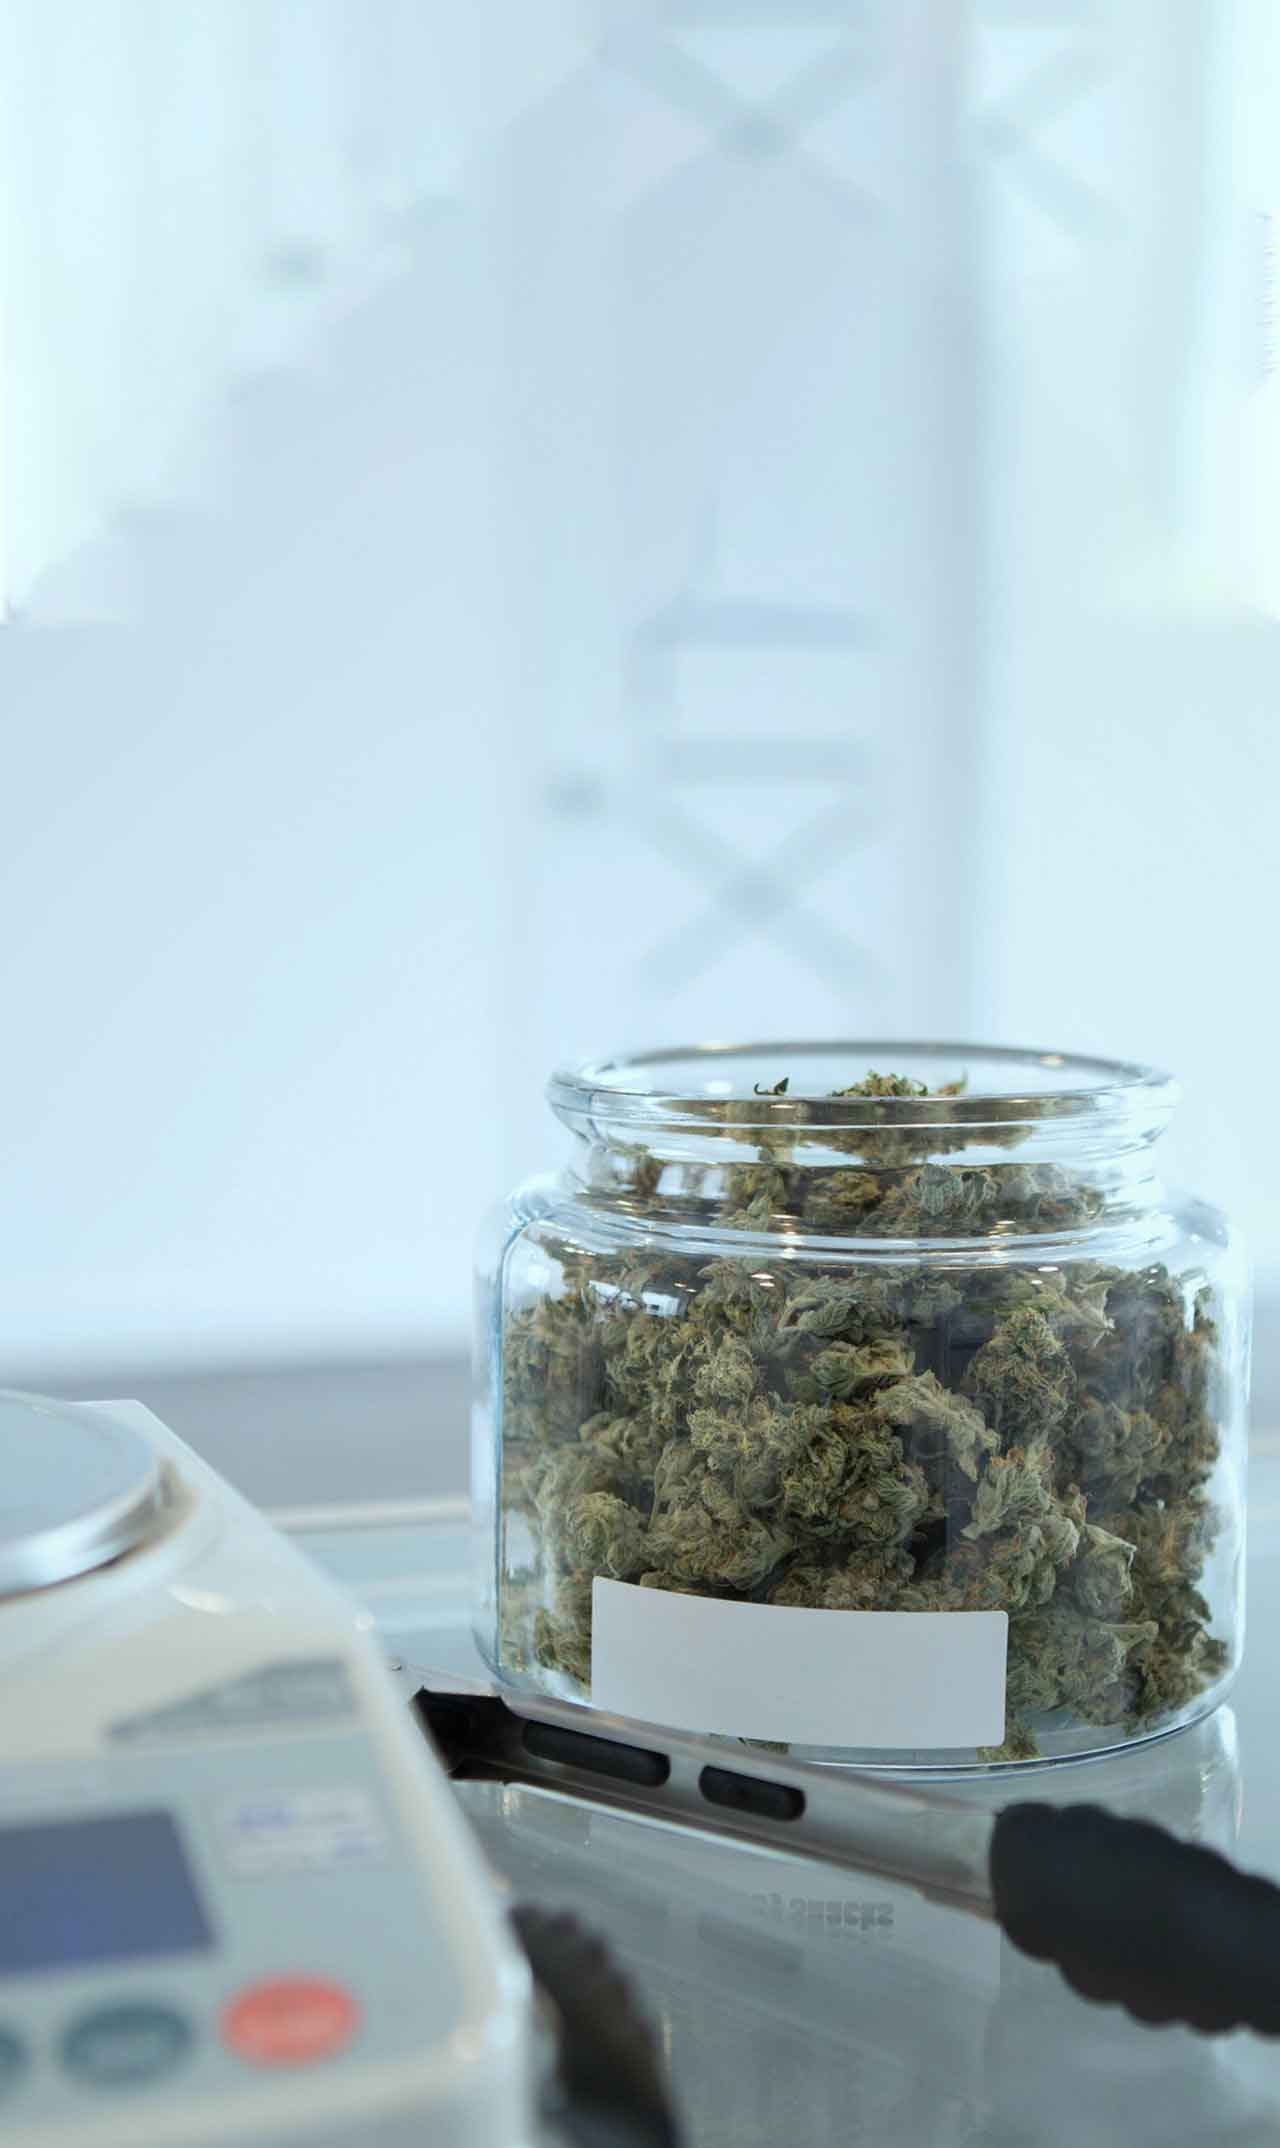 Bottle filled with Marijuana buds